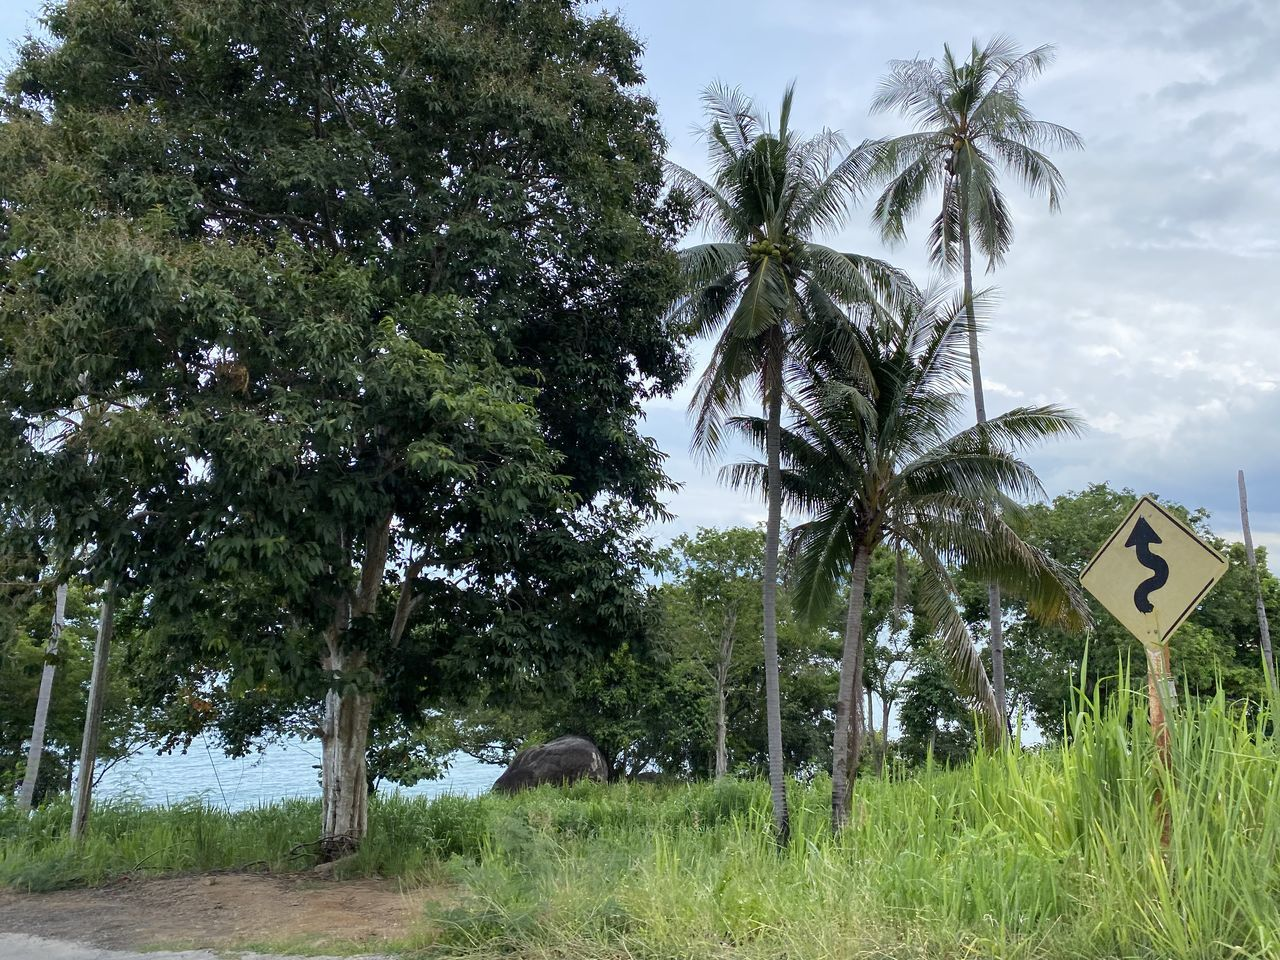 VIEW OF PALM TREES AND PLANTS ON ROAD